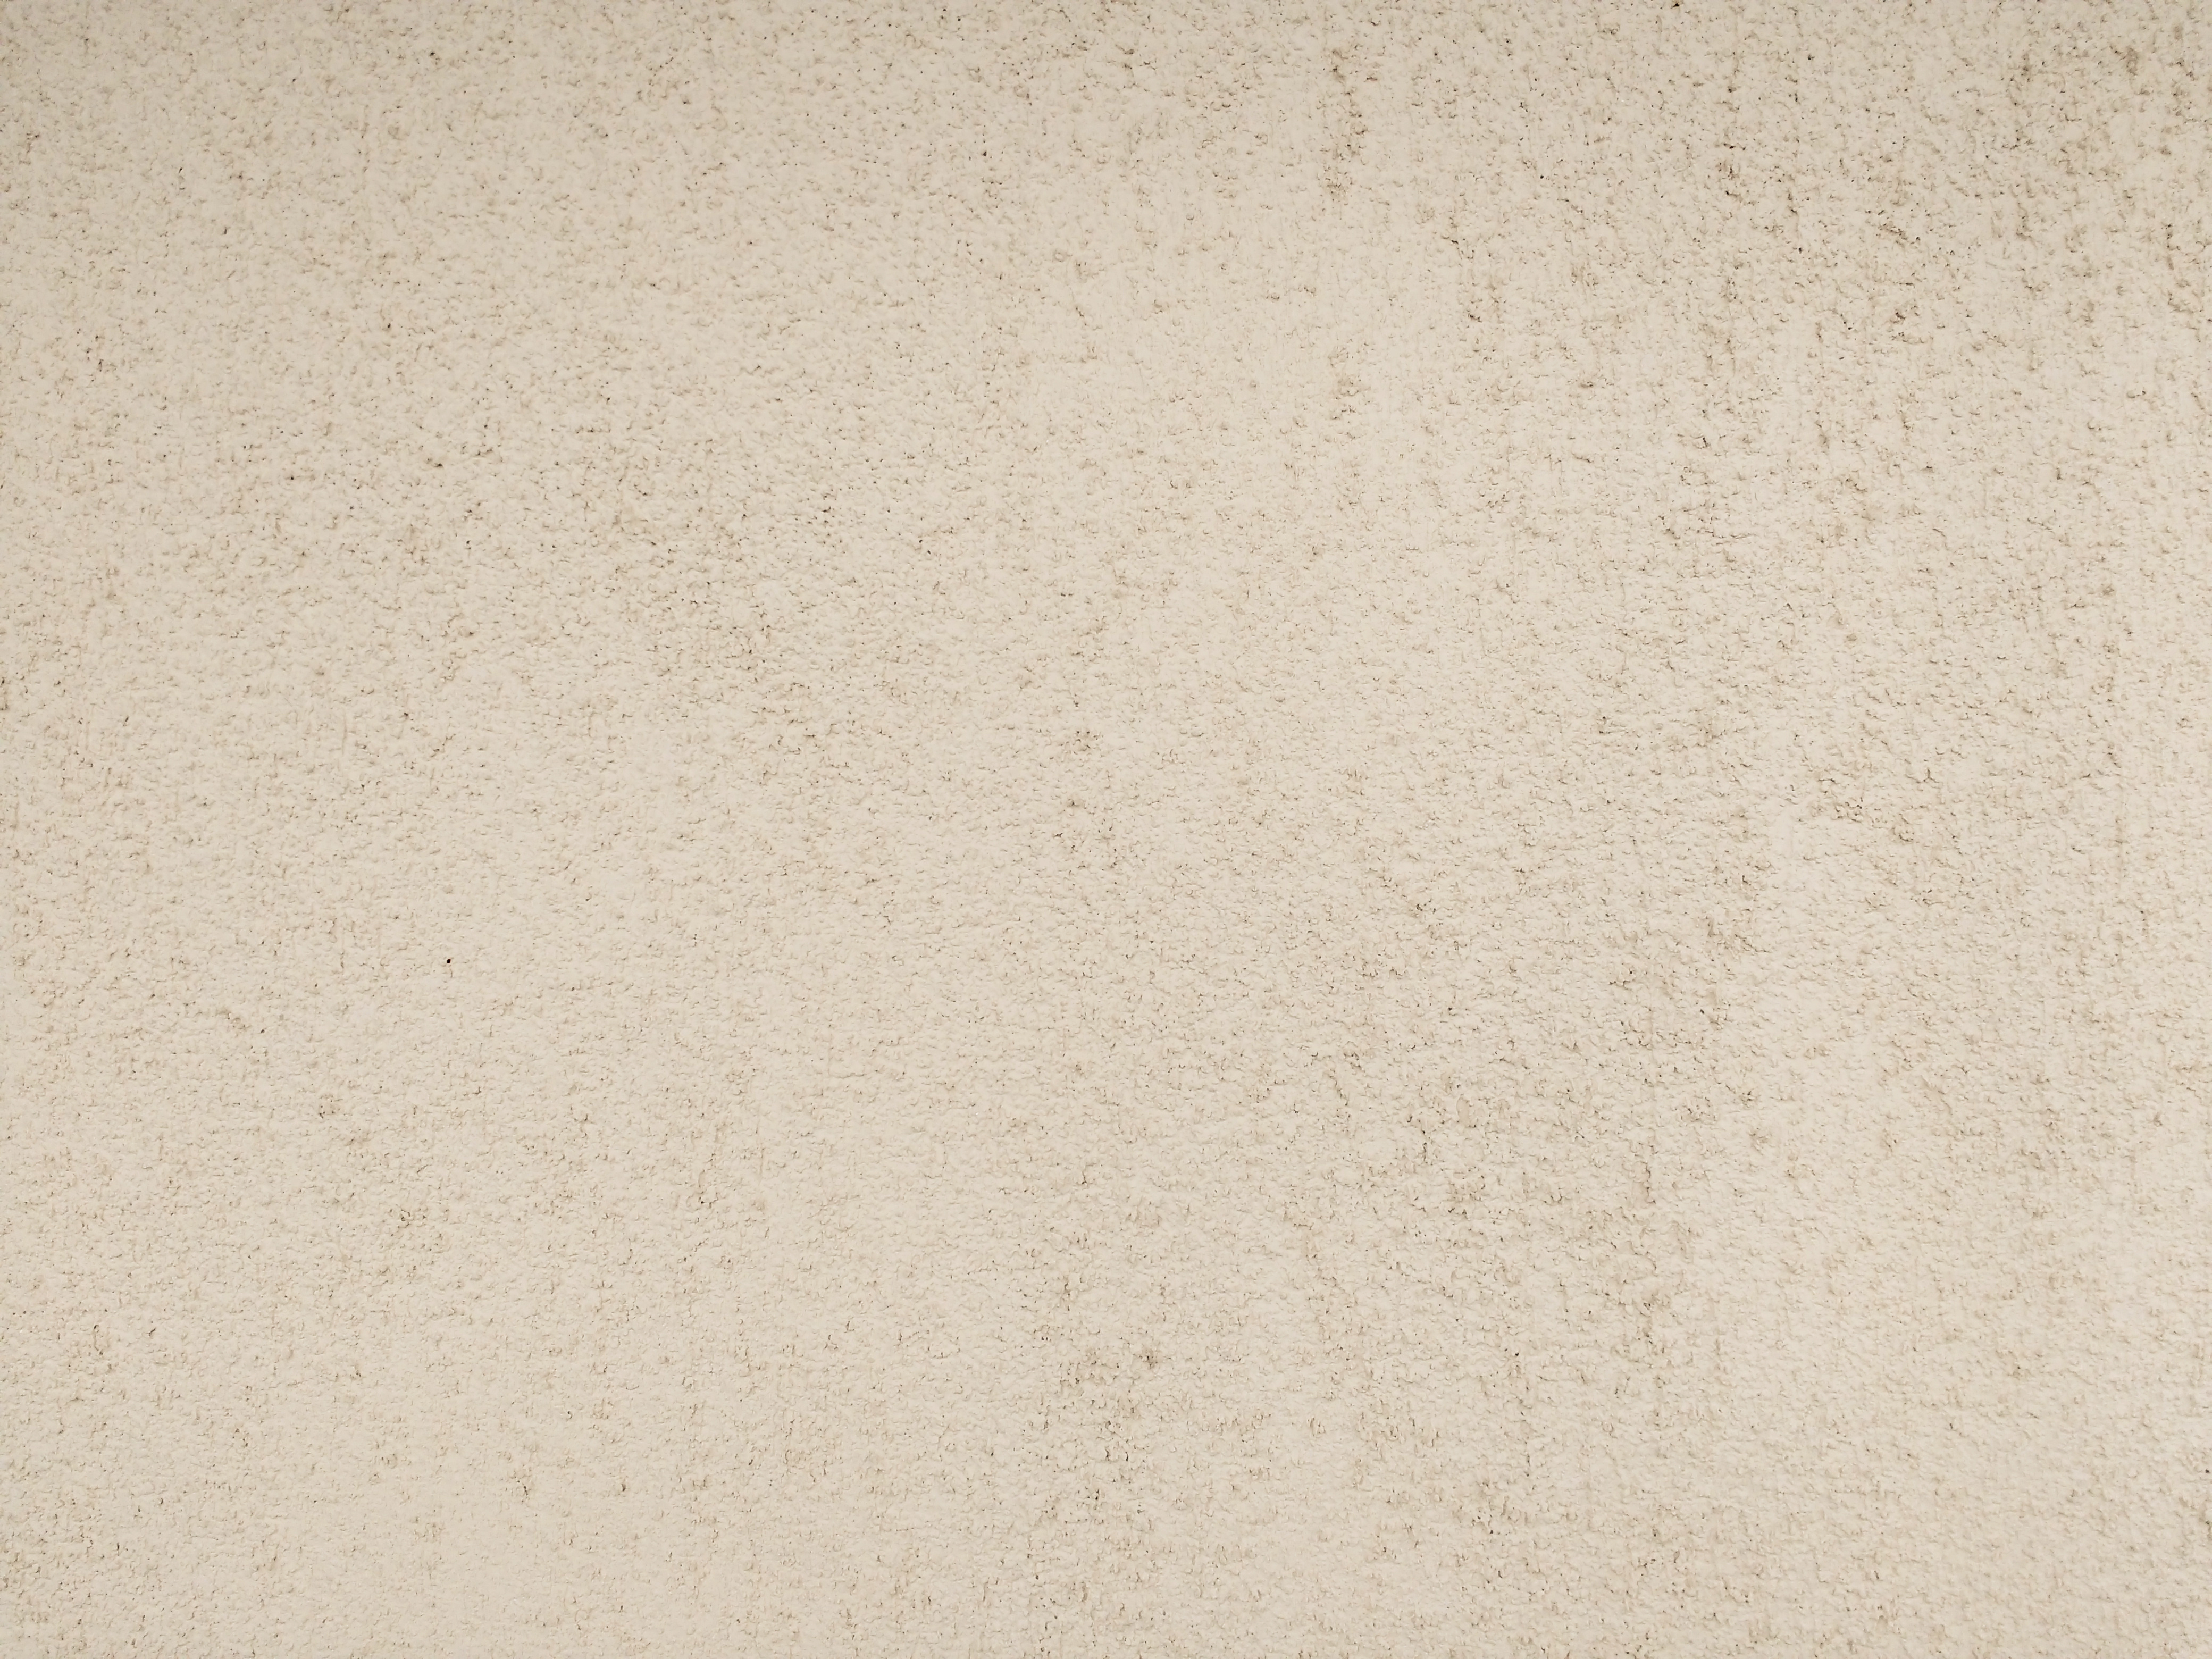 Tan Stucco Wall Texture Picture Free Photograph Photos